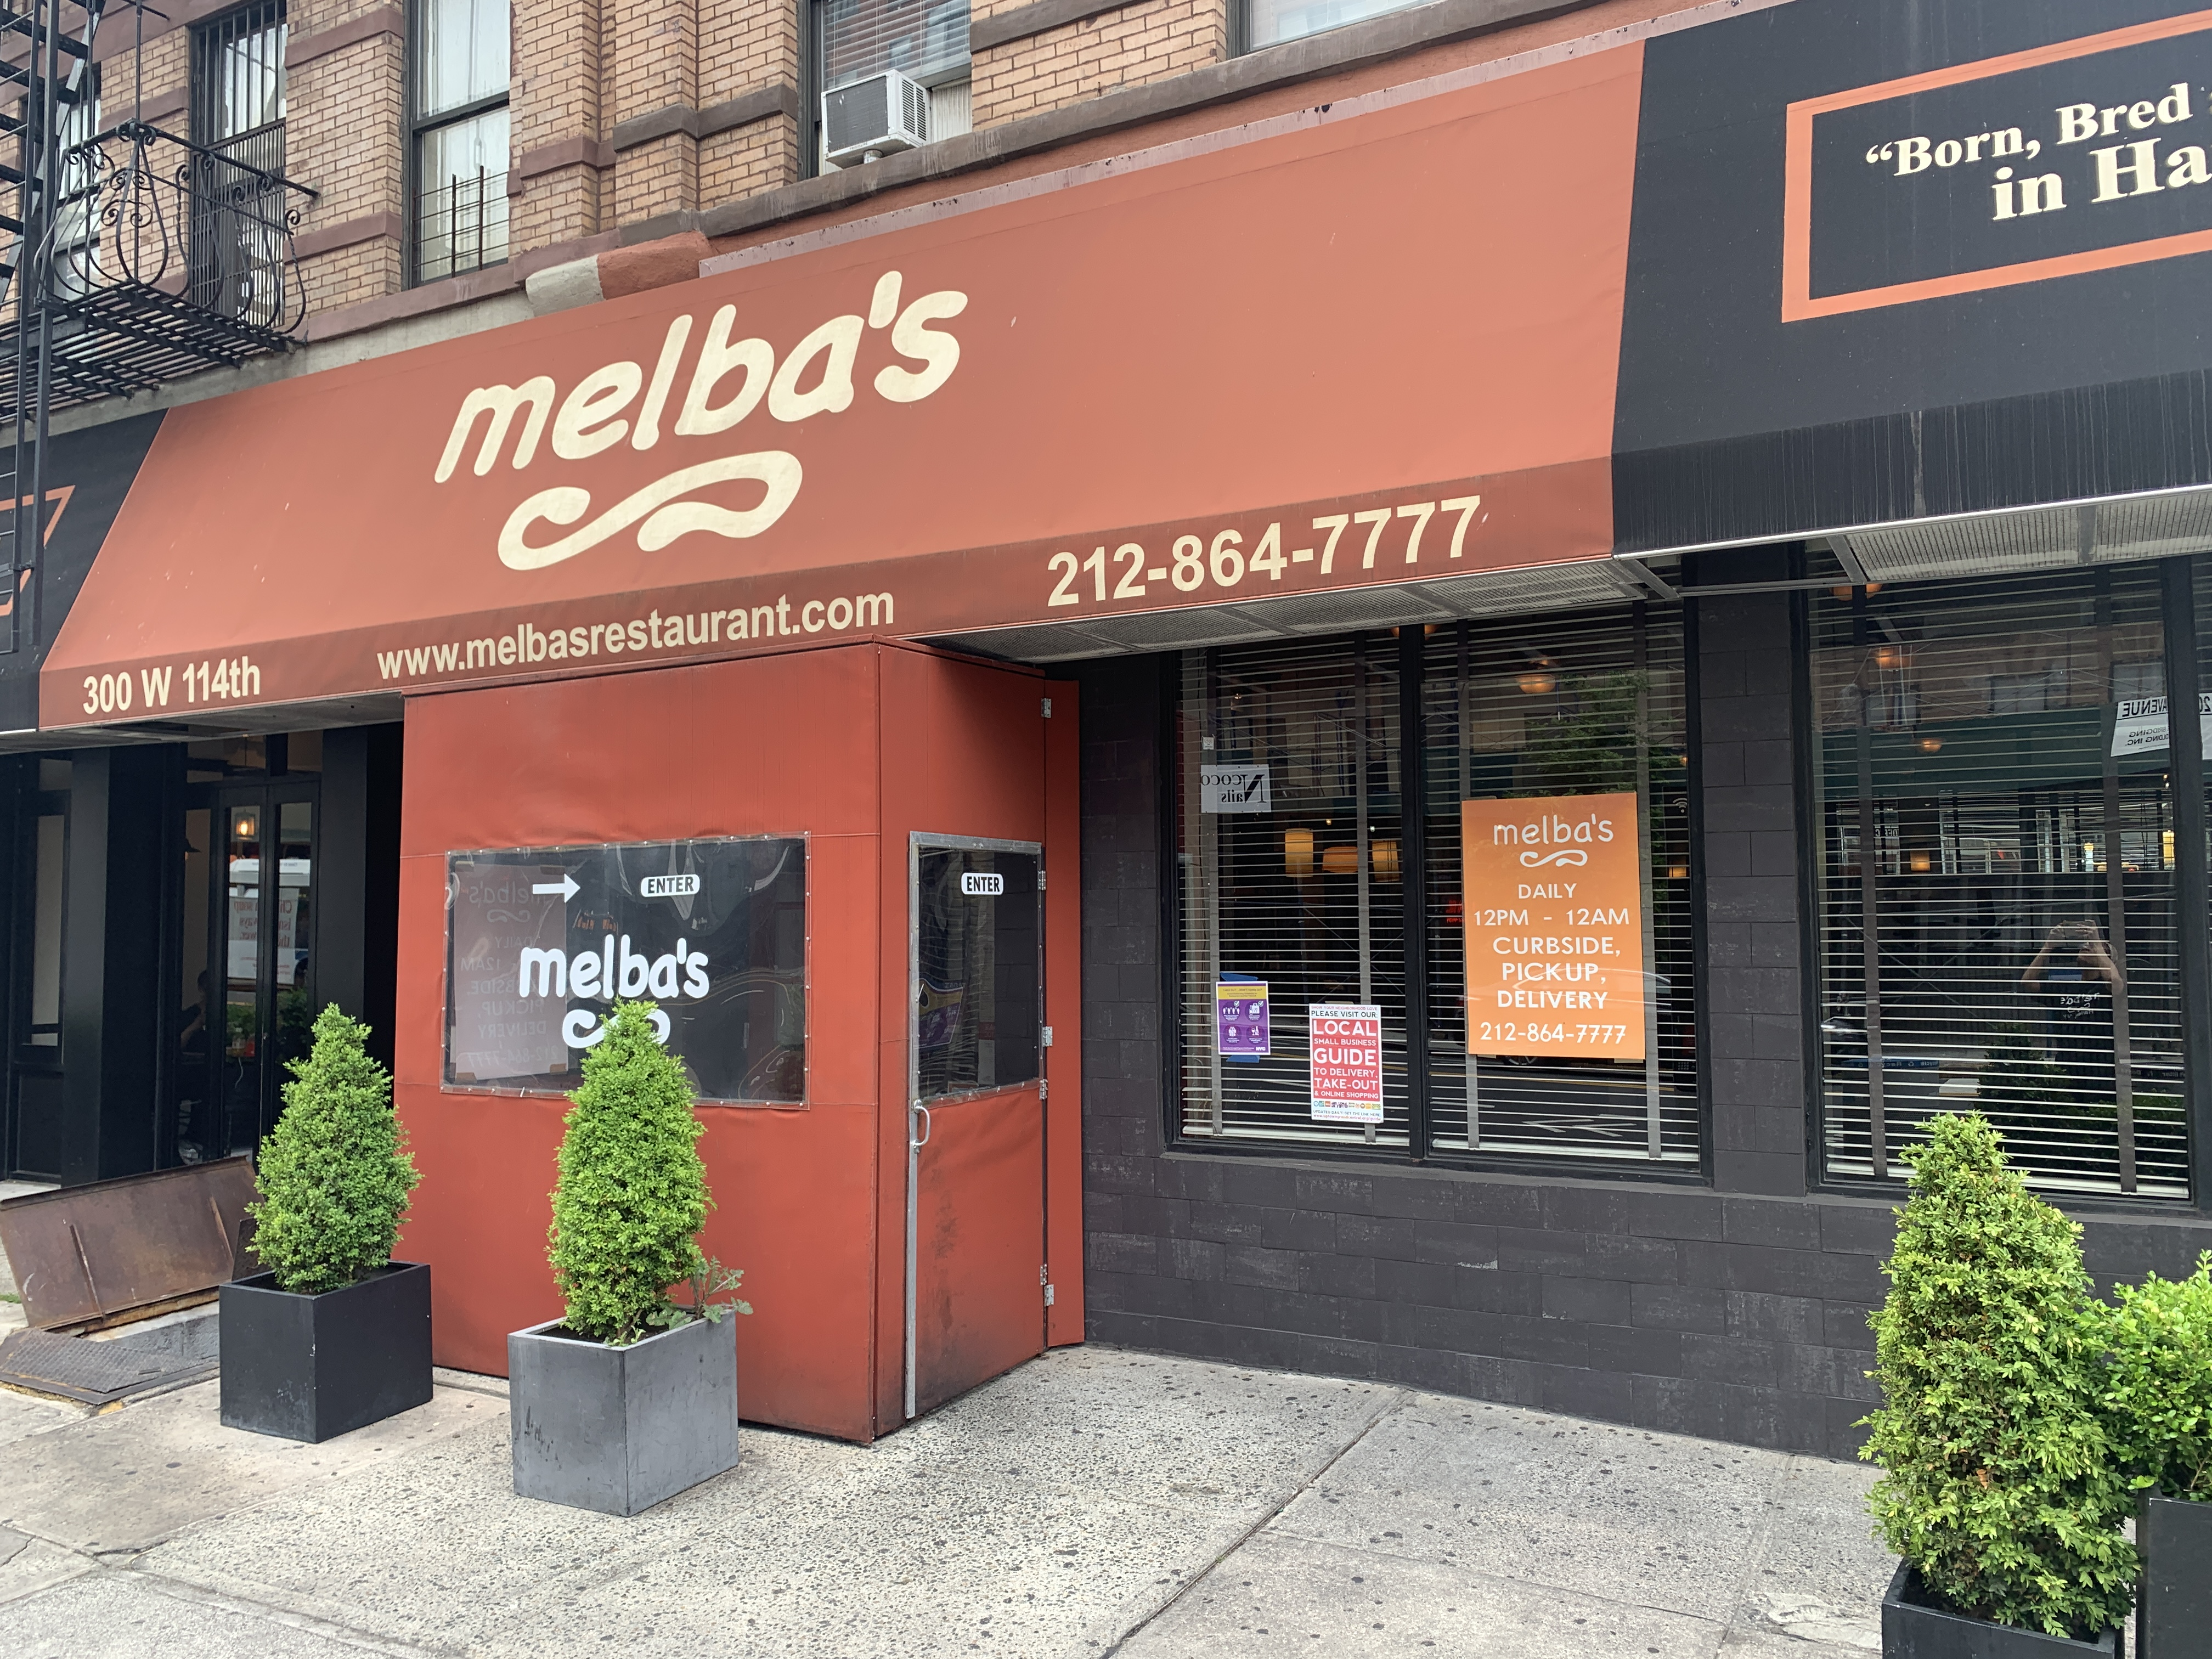 The exterior of the restaurant Melba's in Harlem which has a red awning in the front